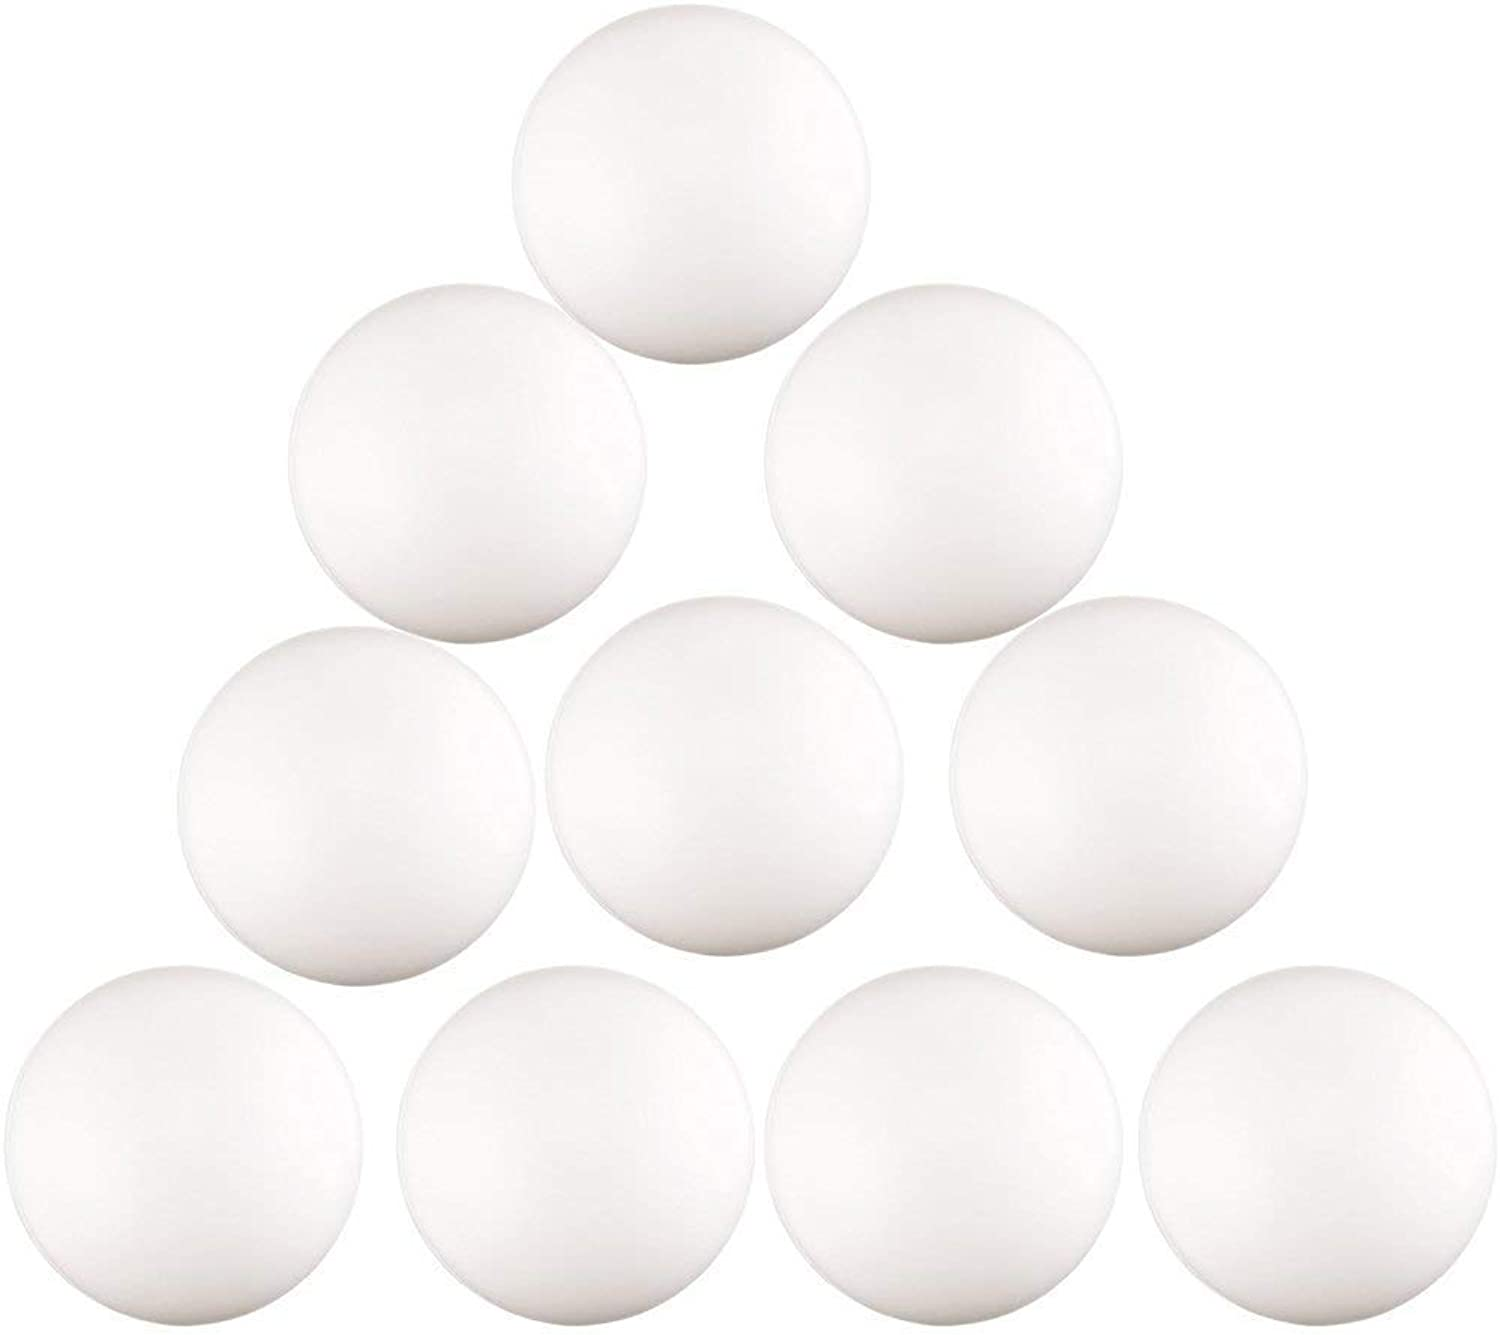 Kaptin 150 Pcs 40mm Plastic Beer Pong Balls,Table Tennis Ball,Beer Pong Tables,Ping Pong Balls Games,White